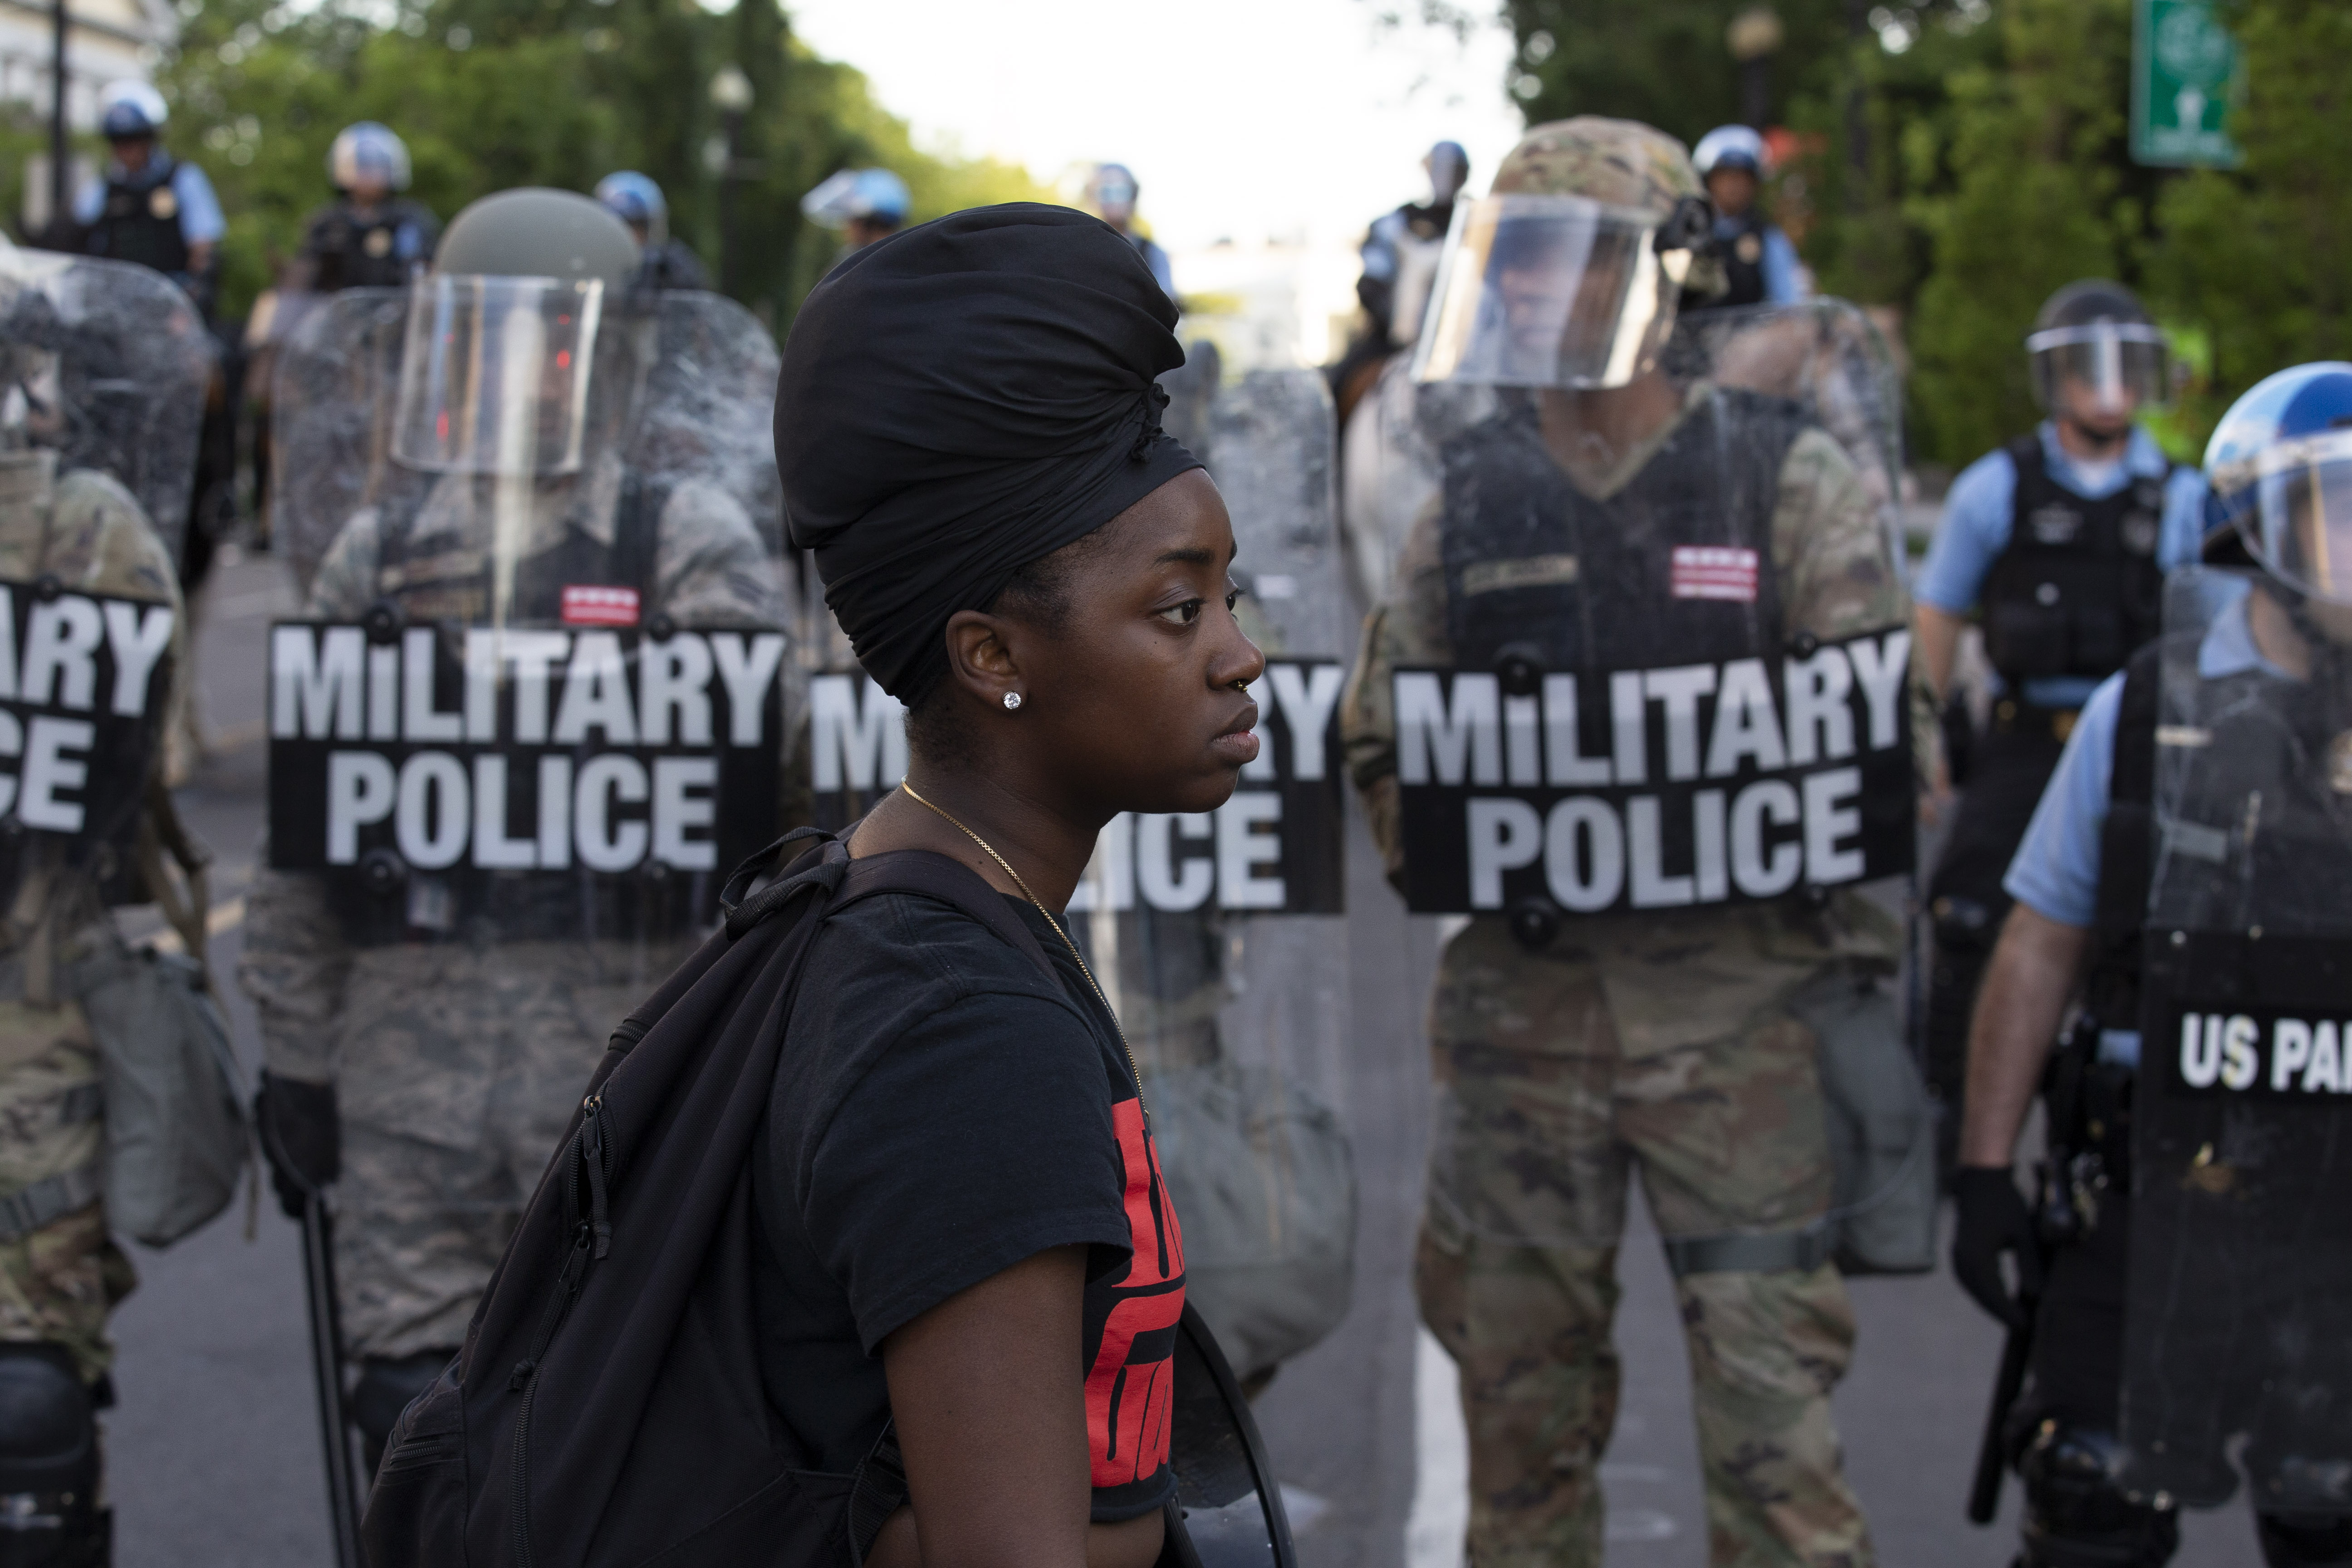 A demonstrator walks in front of a row of military police members wearing riot gear as they push back demonstrators outside of the White House, June 1, 2020 in Washington D.C., during a protest over the death of George Floyd, an unarmed black man, who died after a police officer kneeled on his neck for several minutes.(Photo by JOSE LUIS MAGANA/AFP via Getty Images)